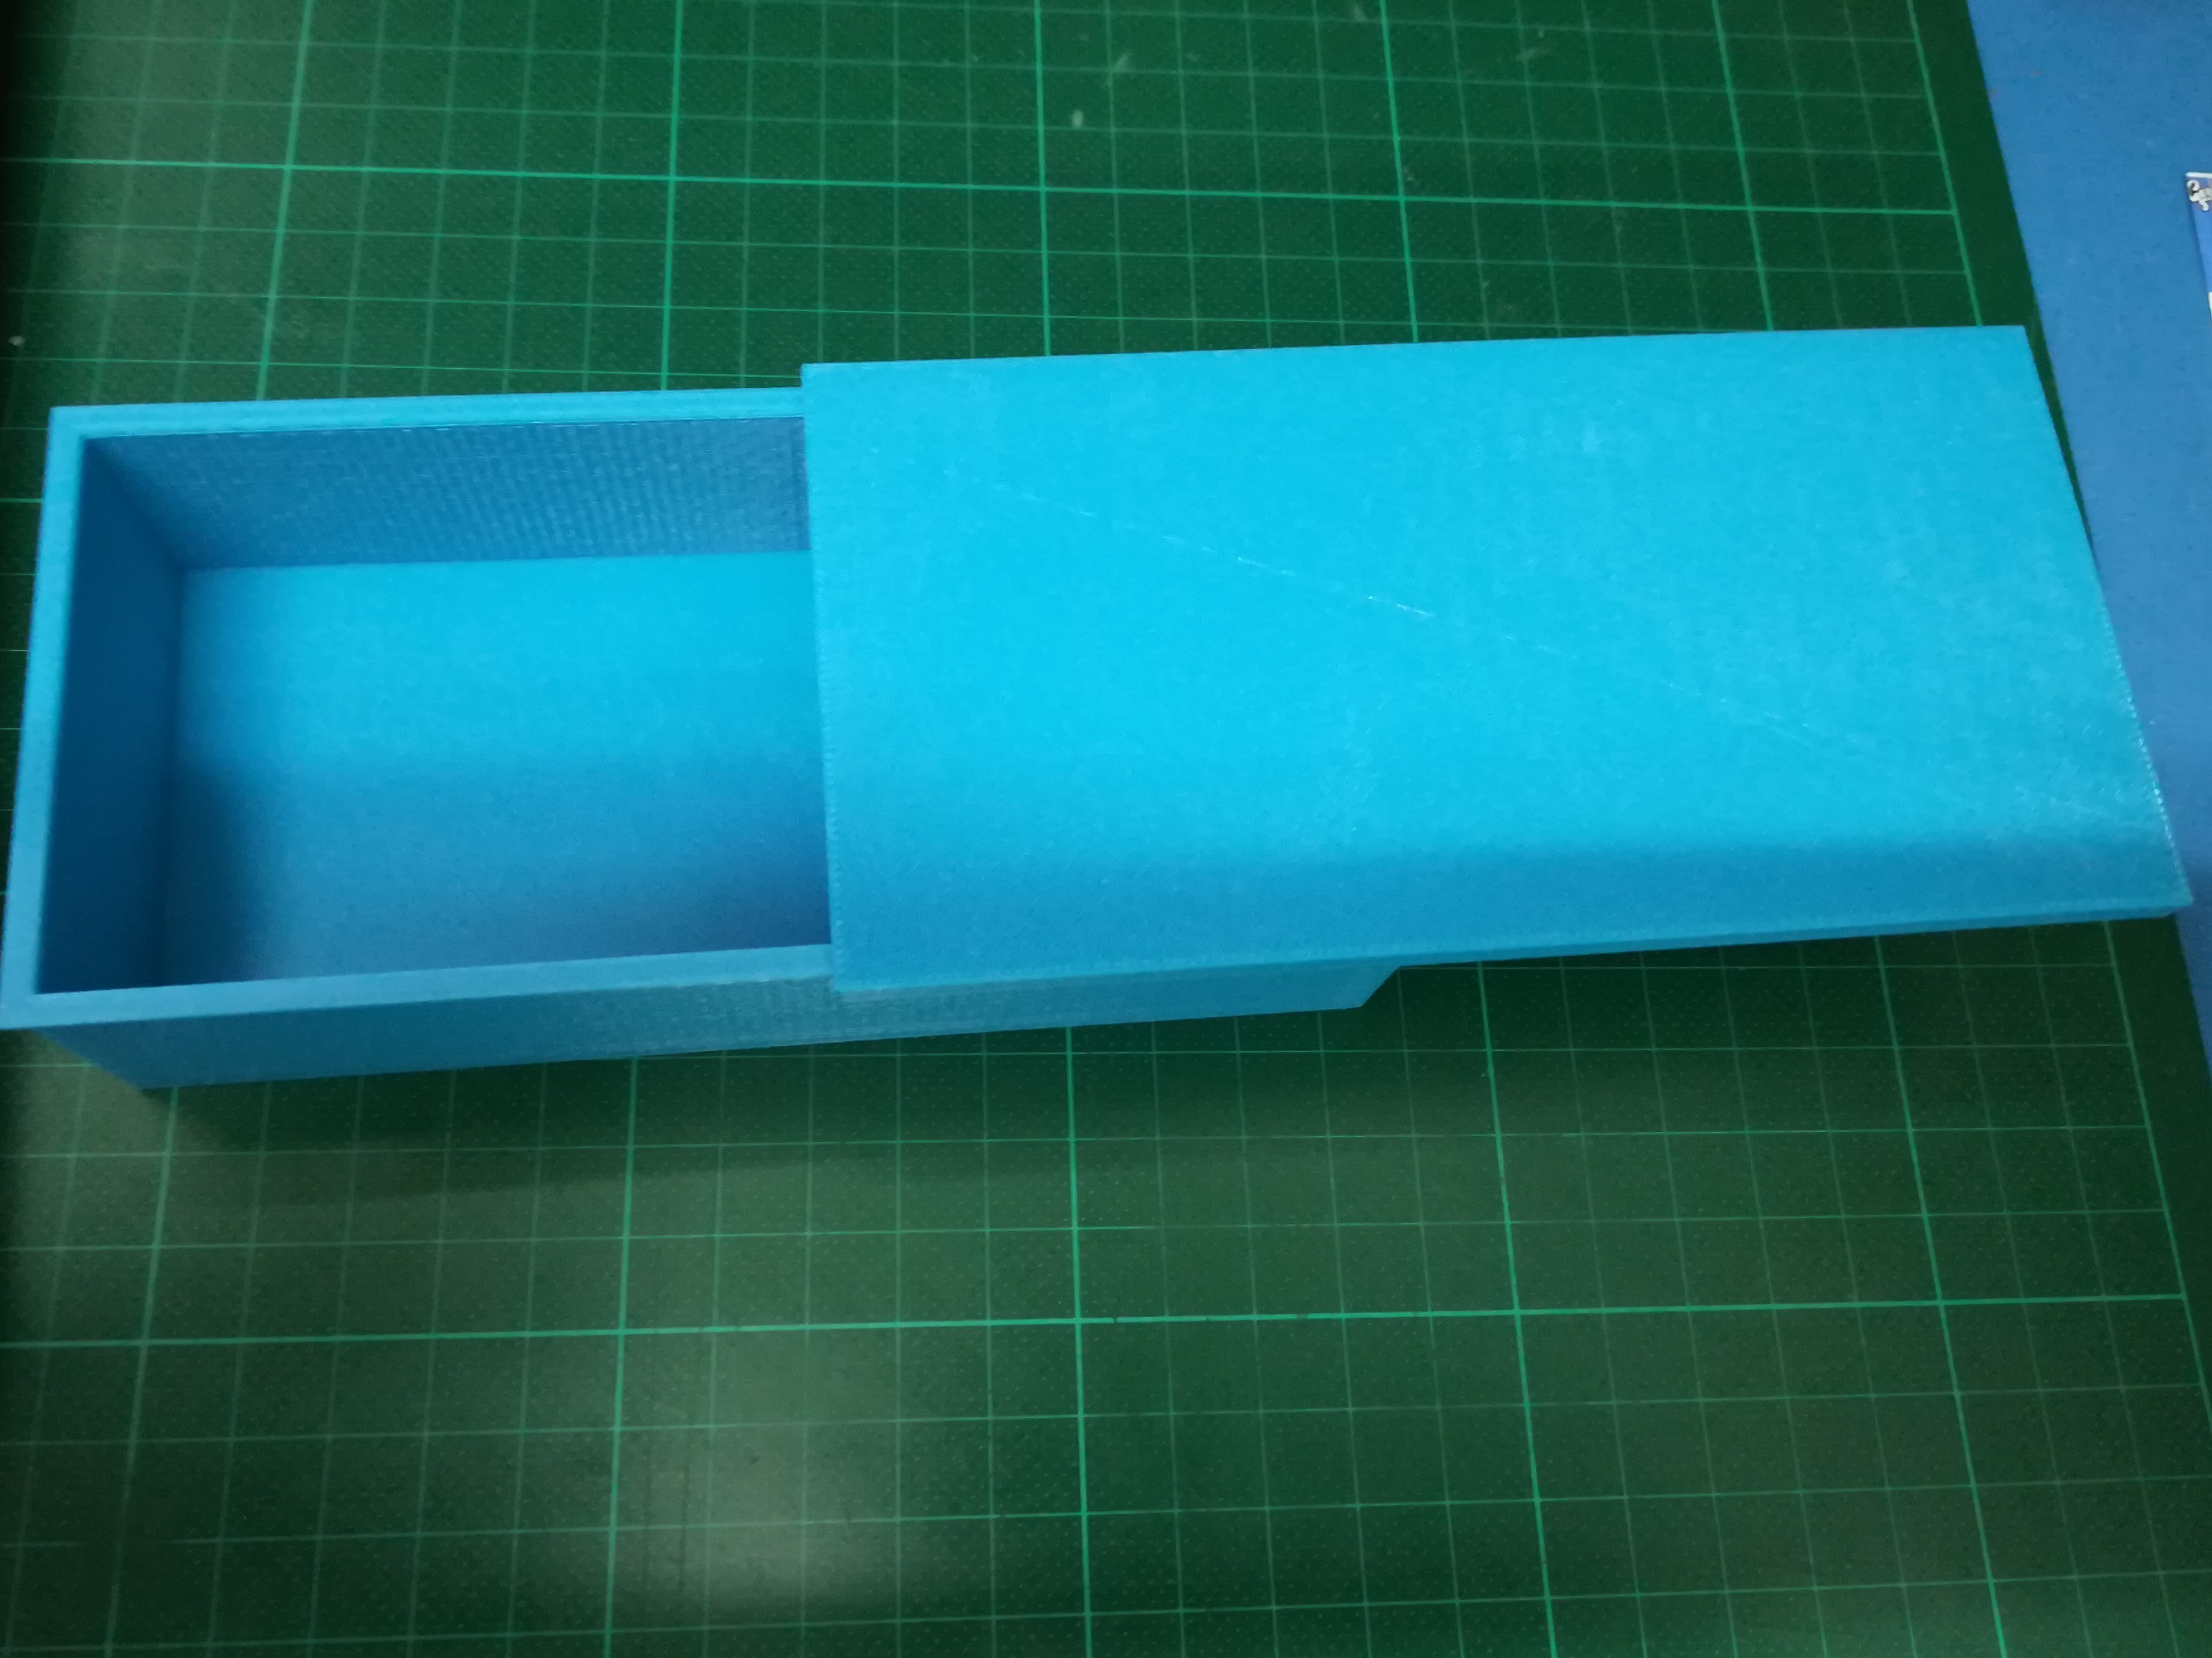 IMG_20180904_214951.jpg Download free STL file Box with sliding lid • 3D printer object, Michael_moi